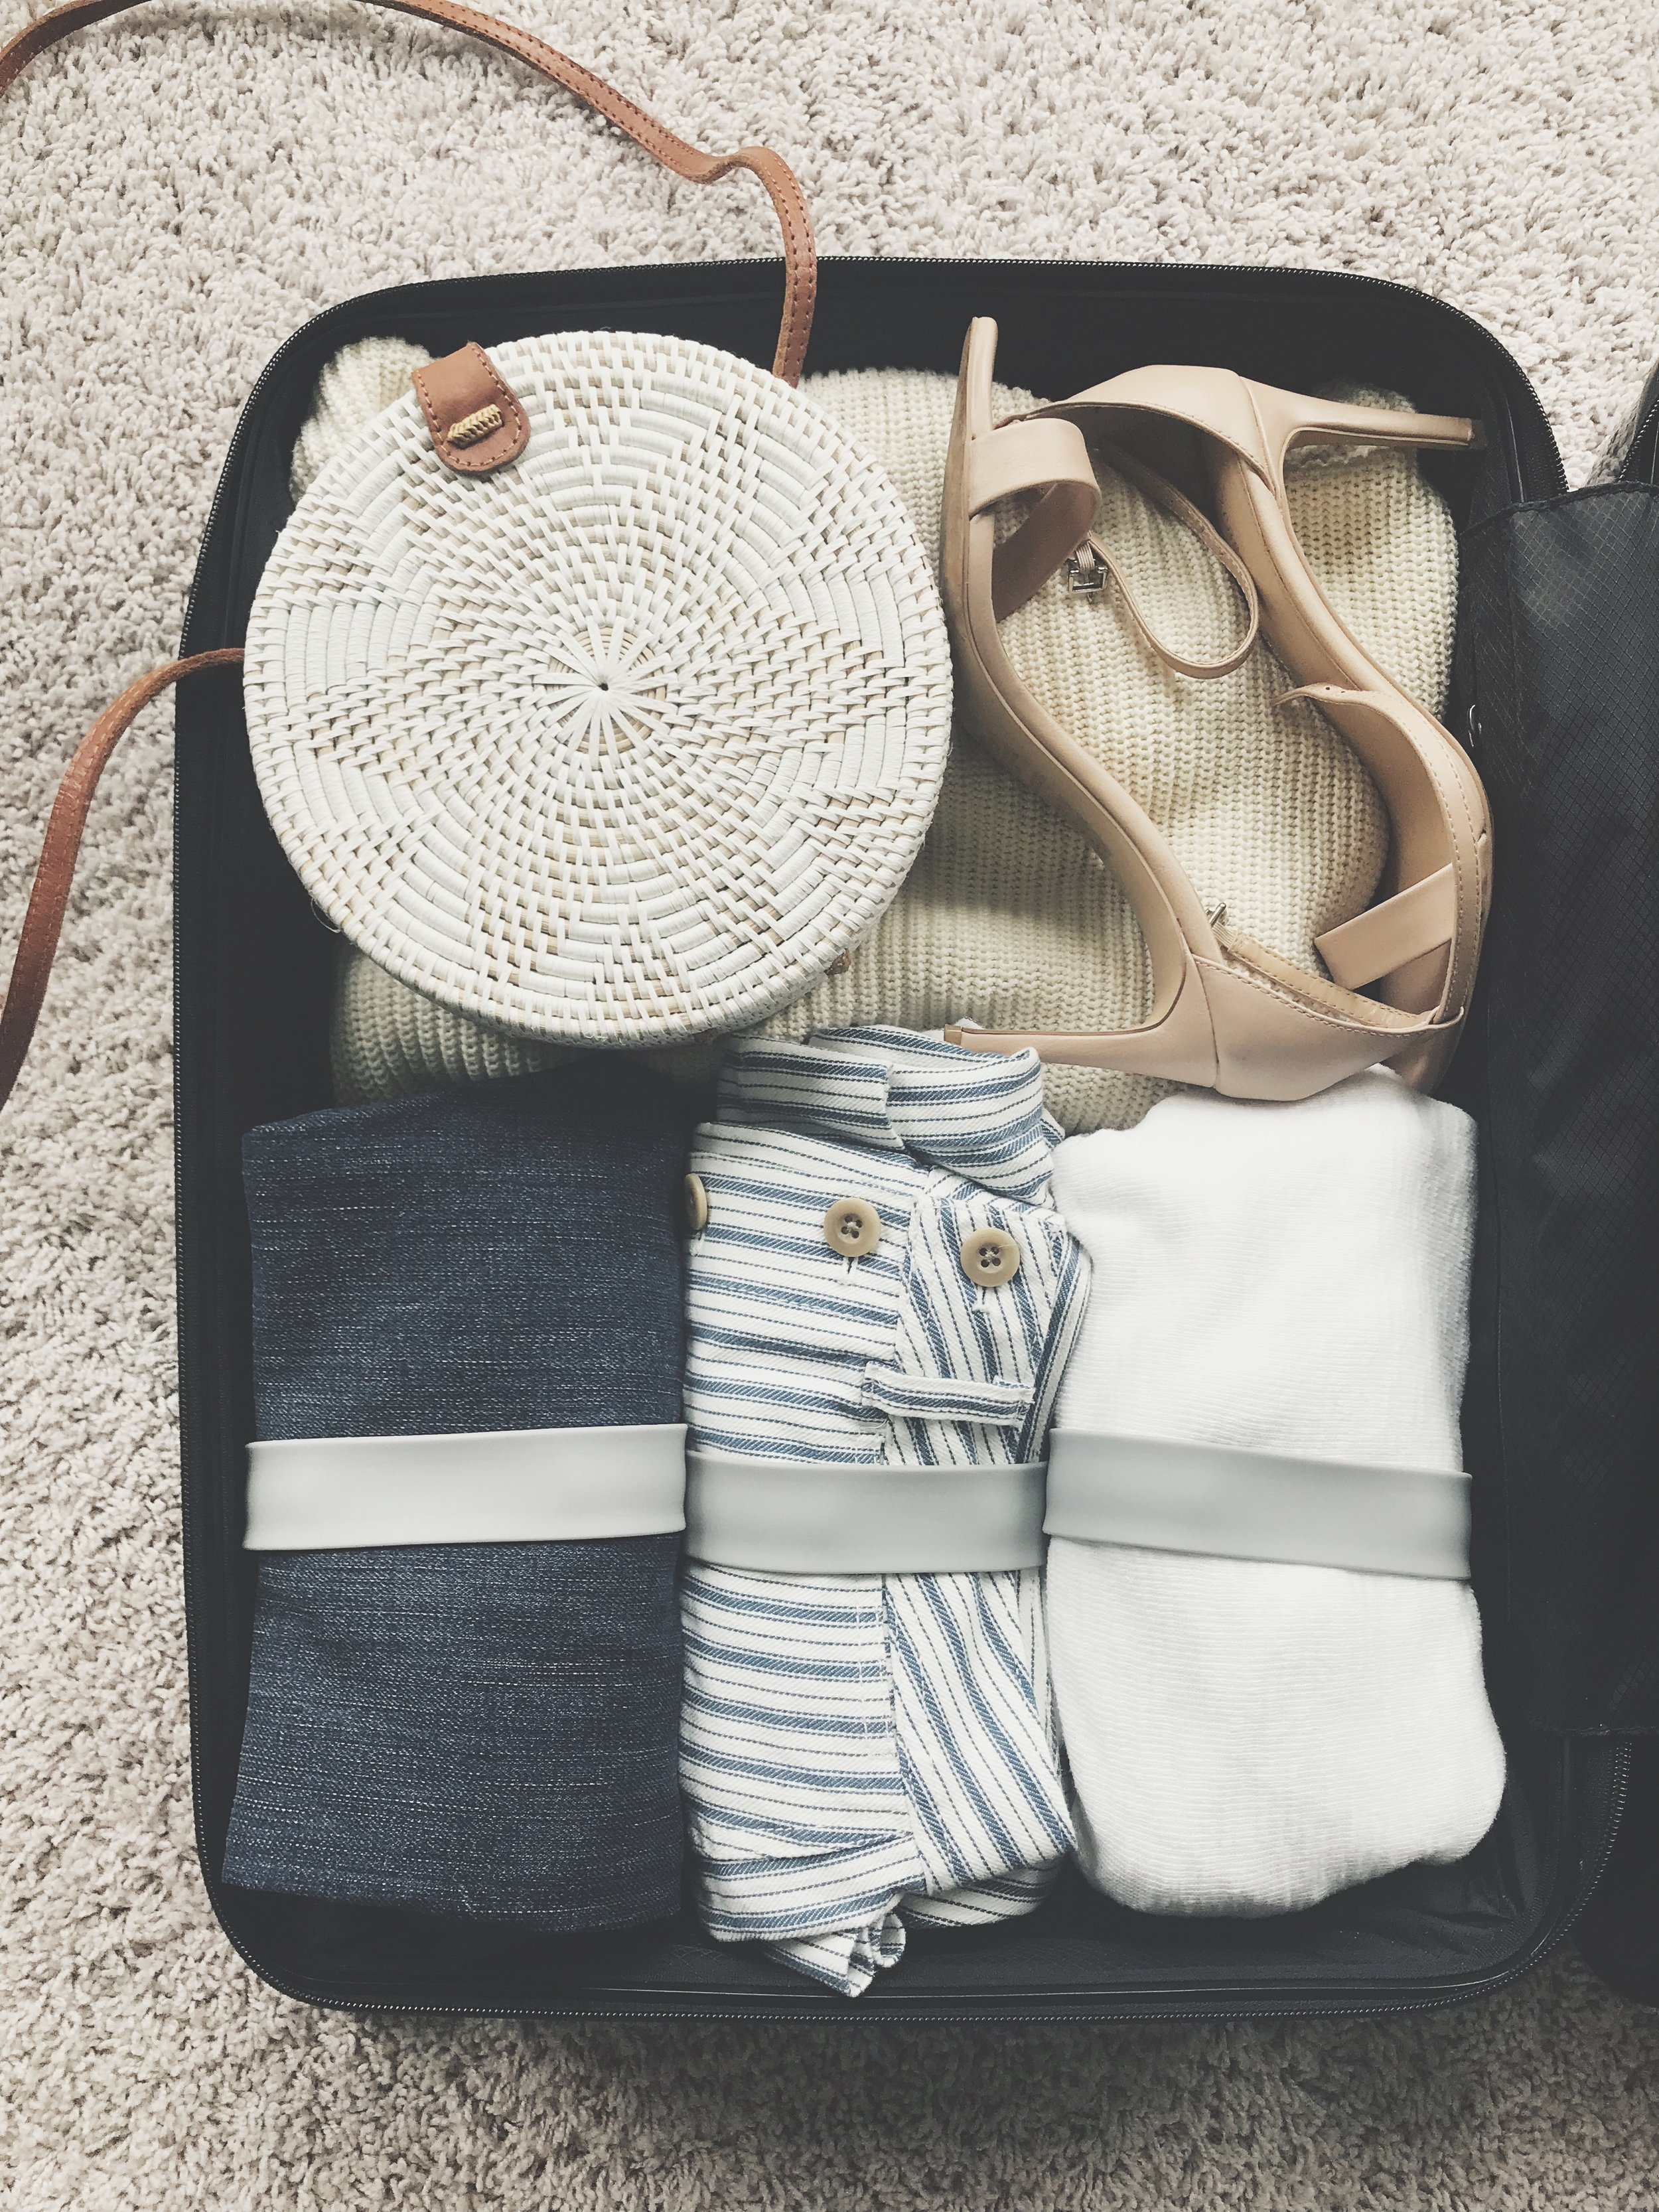 PACKING GUIDE PHOTO 3.JPG